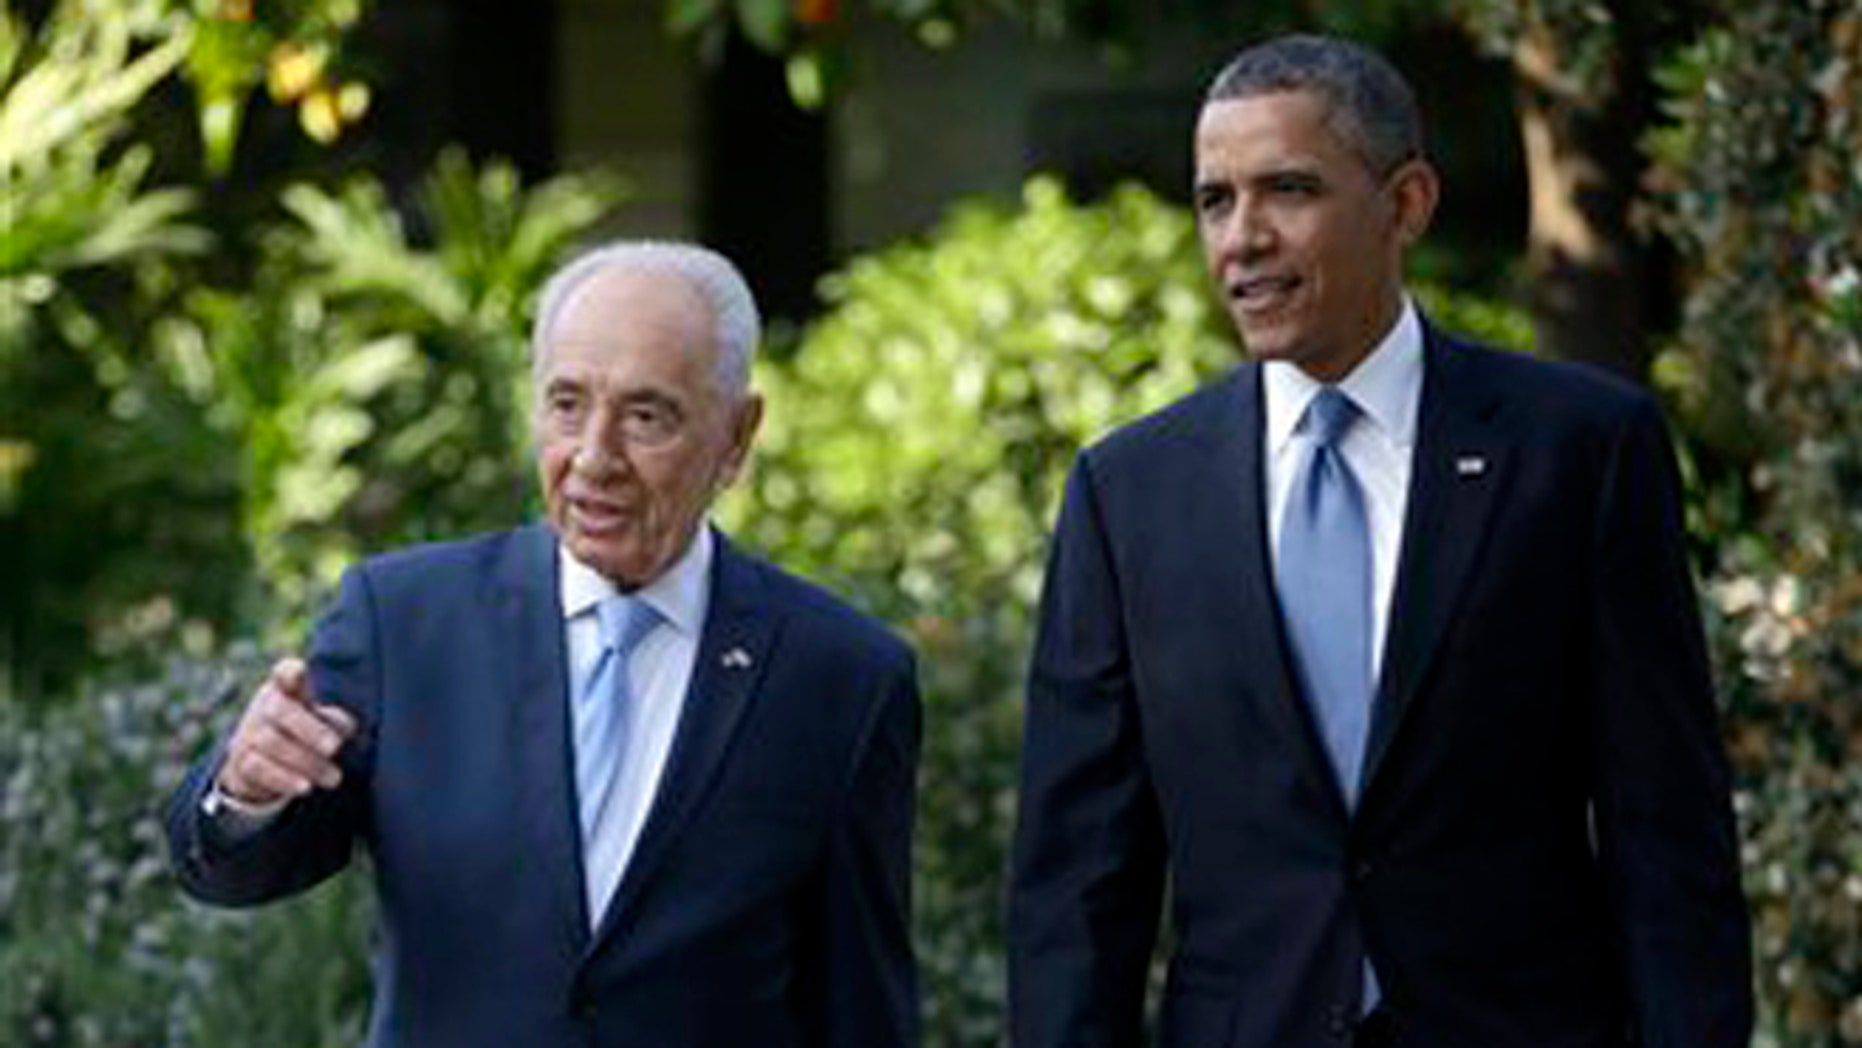 March 20: President Obama tours the garden of the President's Residence with Israeli President Shimon Peres in Jerusalem, Israel.